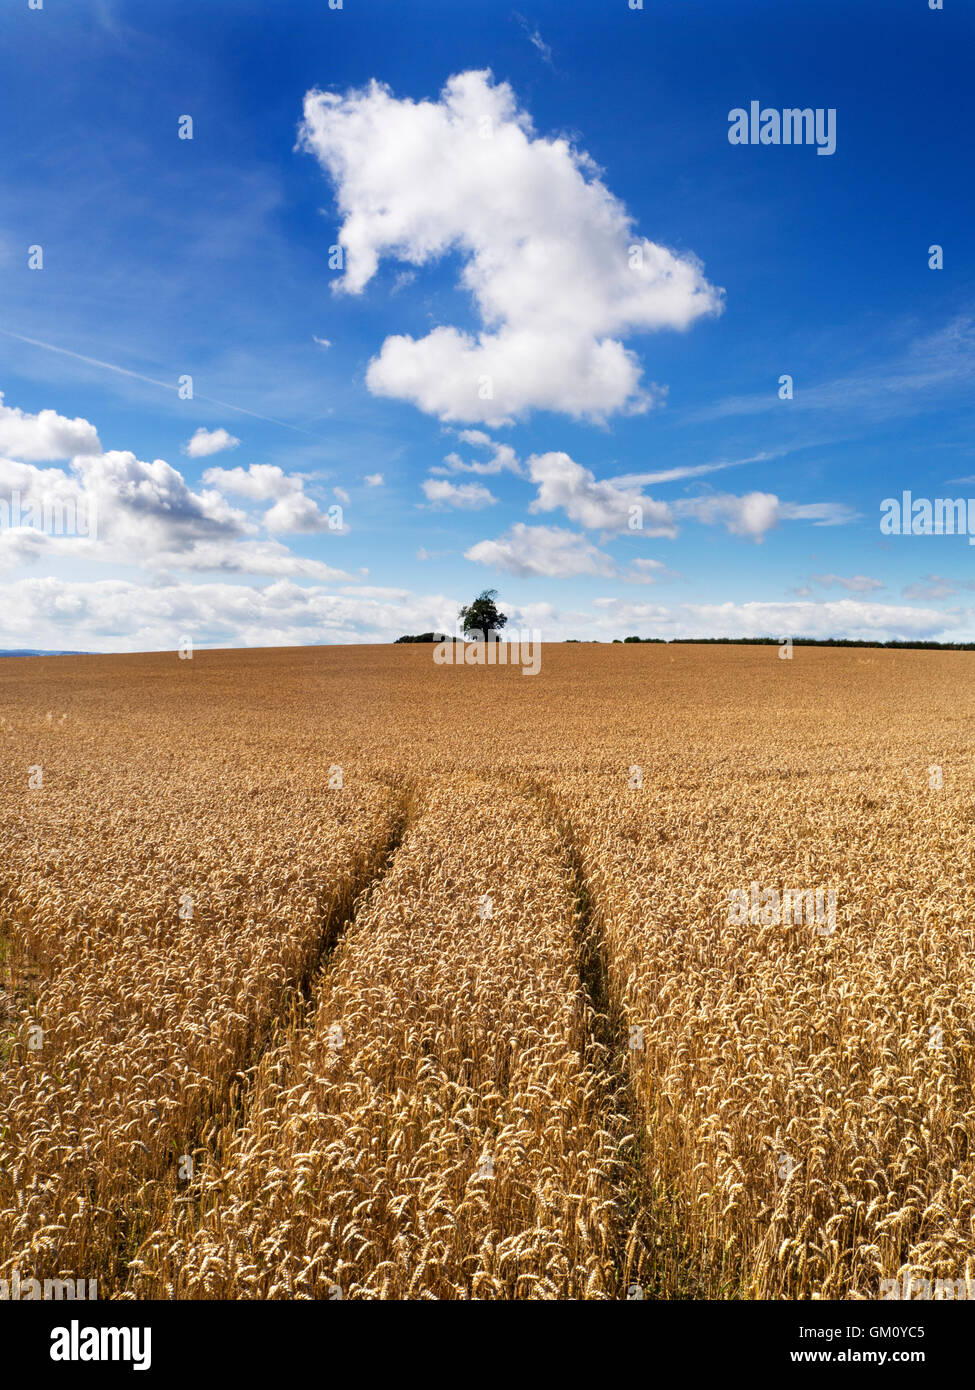 White Cloud Formation over a Wheat Field near Boroughbridge North Yorkshire England - Stock Image